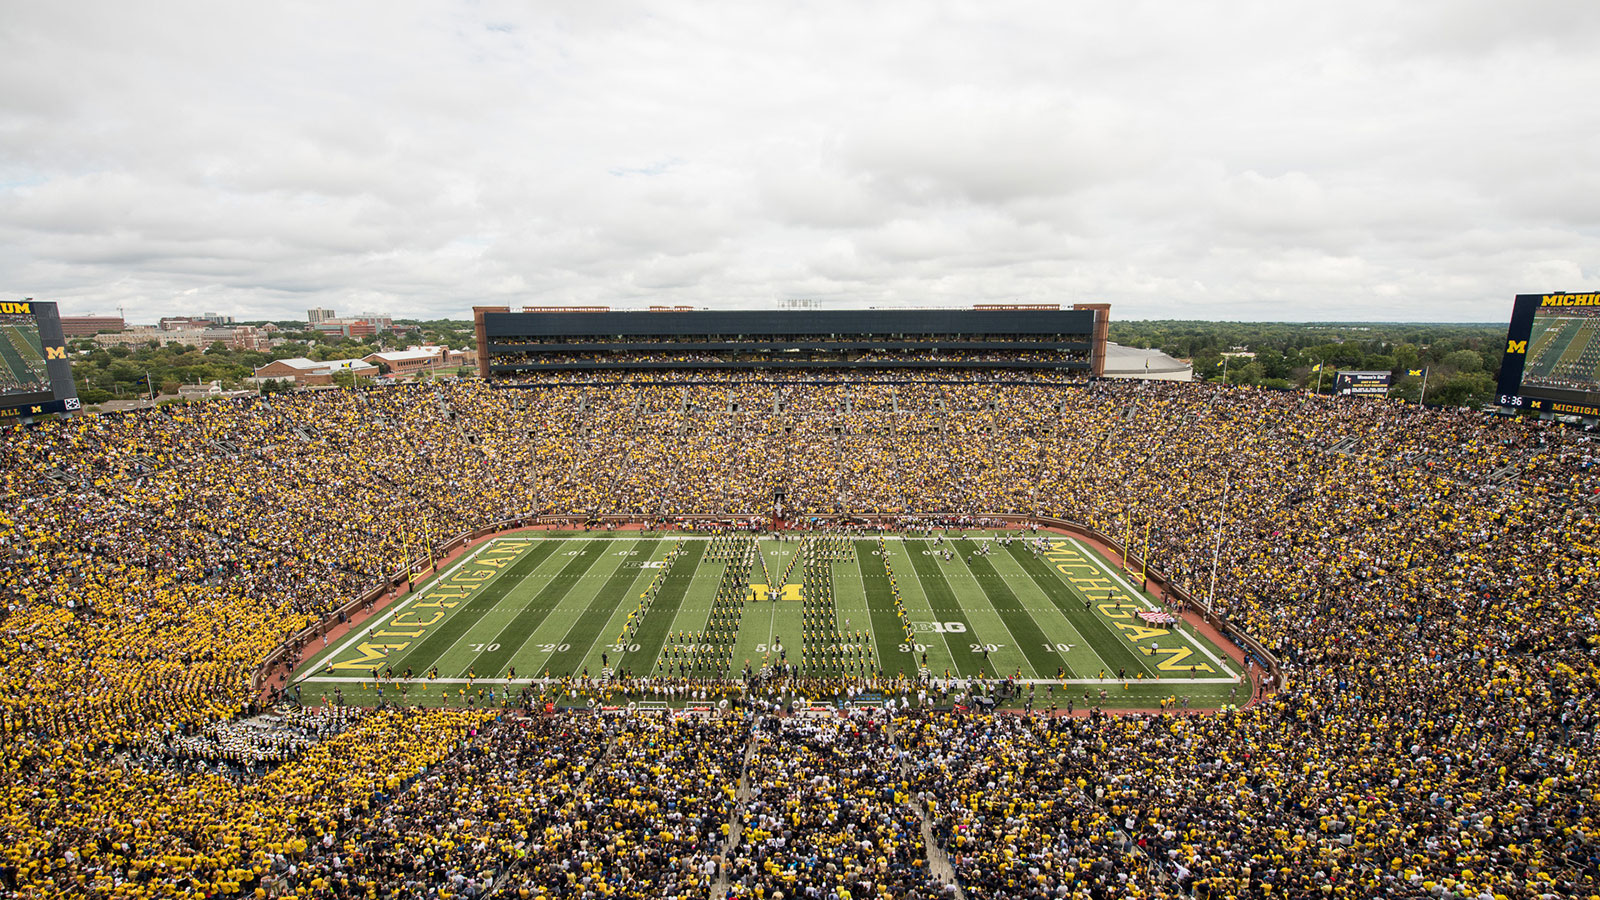 Umich Calendar 2020 Michigan Announces Changes to 2020 and 2021 Football Schedules